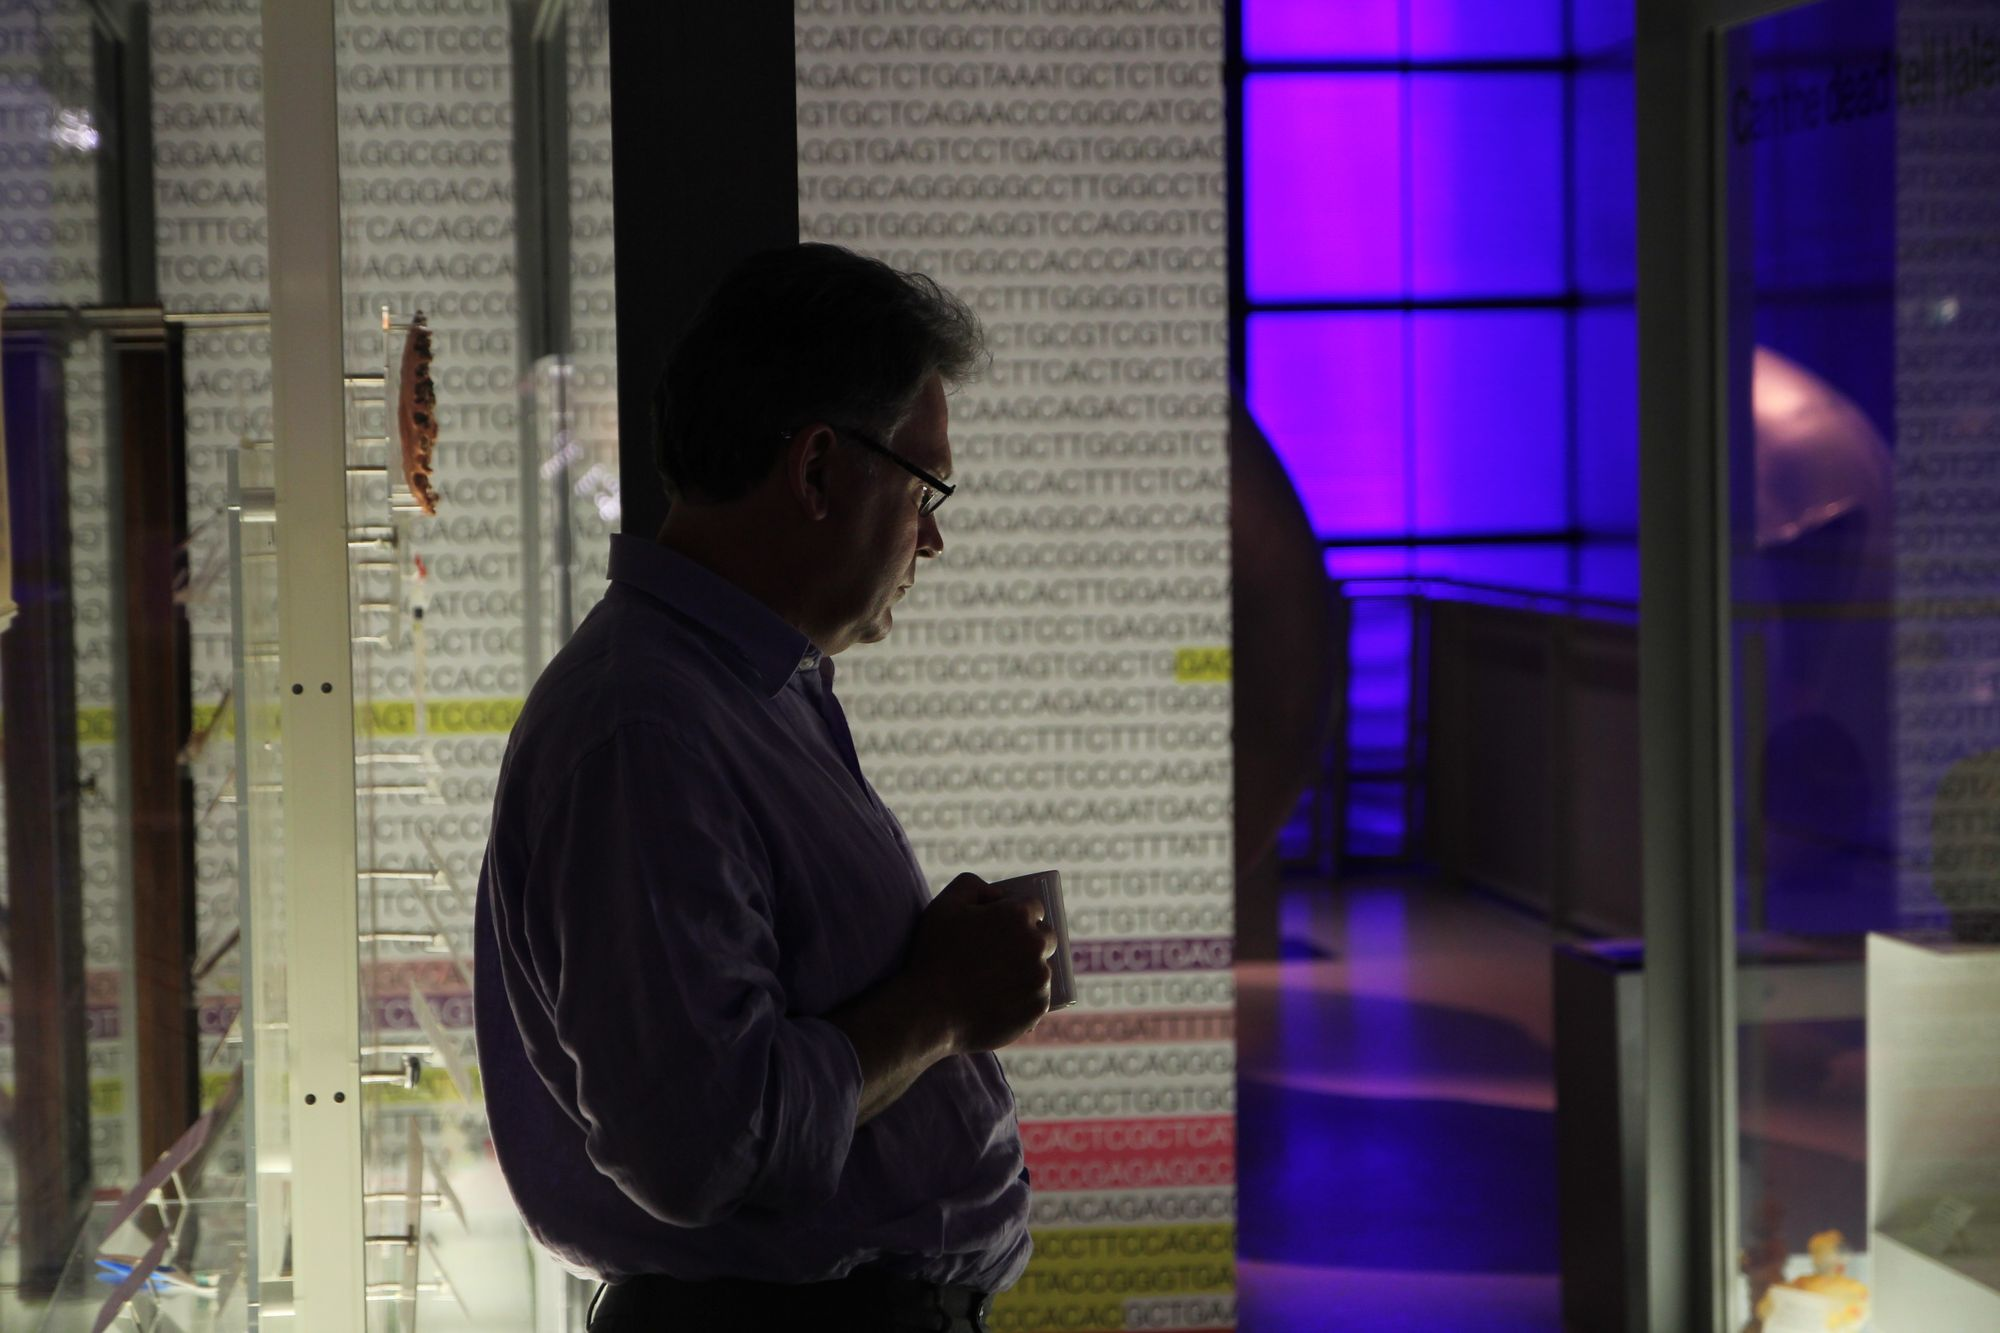 Male person holding a mug looks at a glass exhibition case, with the letters of a DNA sequence in the backdrop